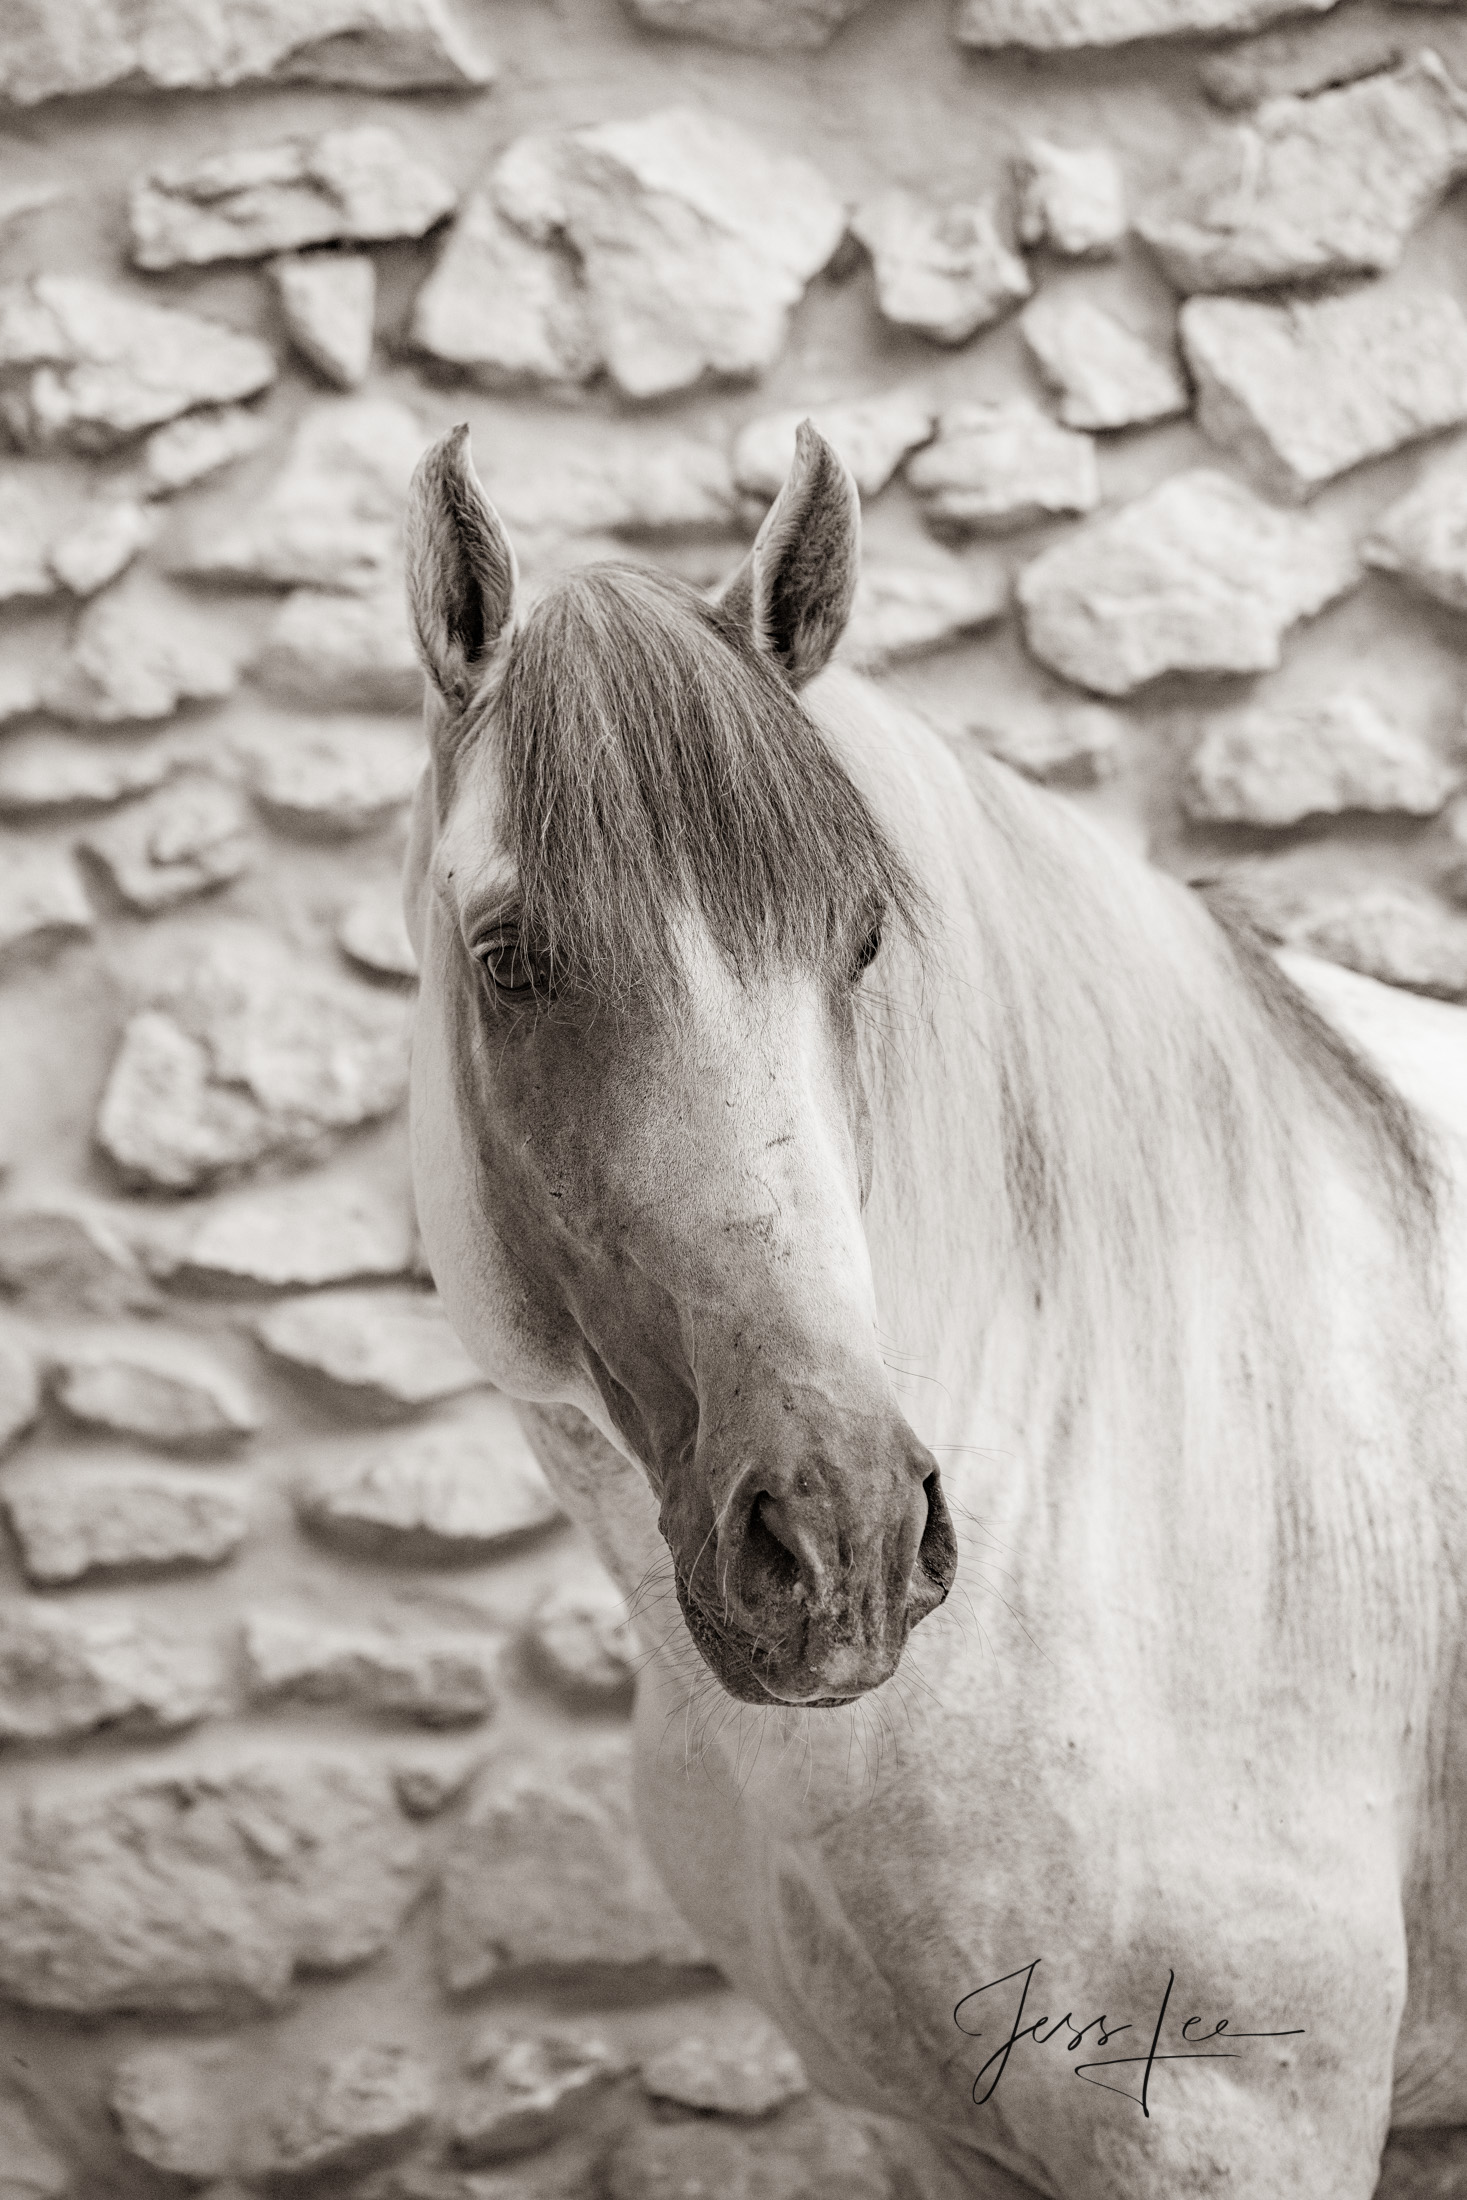 Camargue # 9 Fine Art, Limited Edition, Luxurious photographic prints of the horses of the Camargue and Provence region of France...